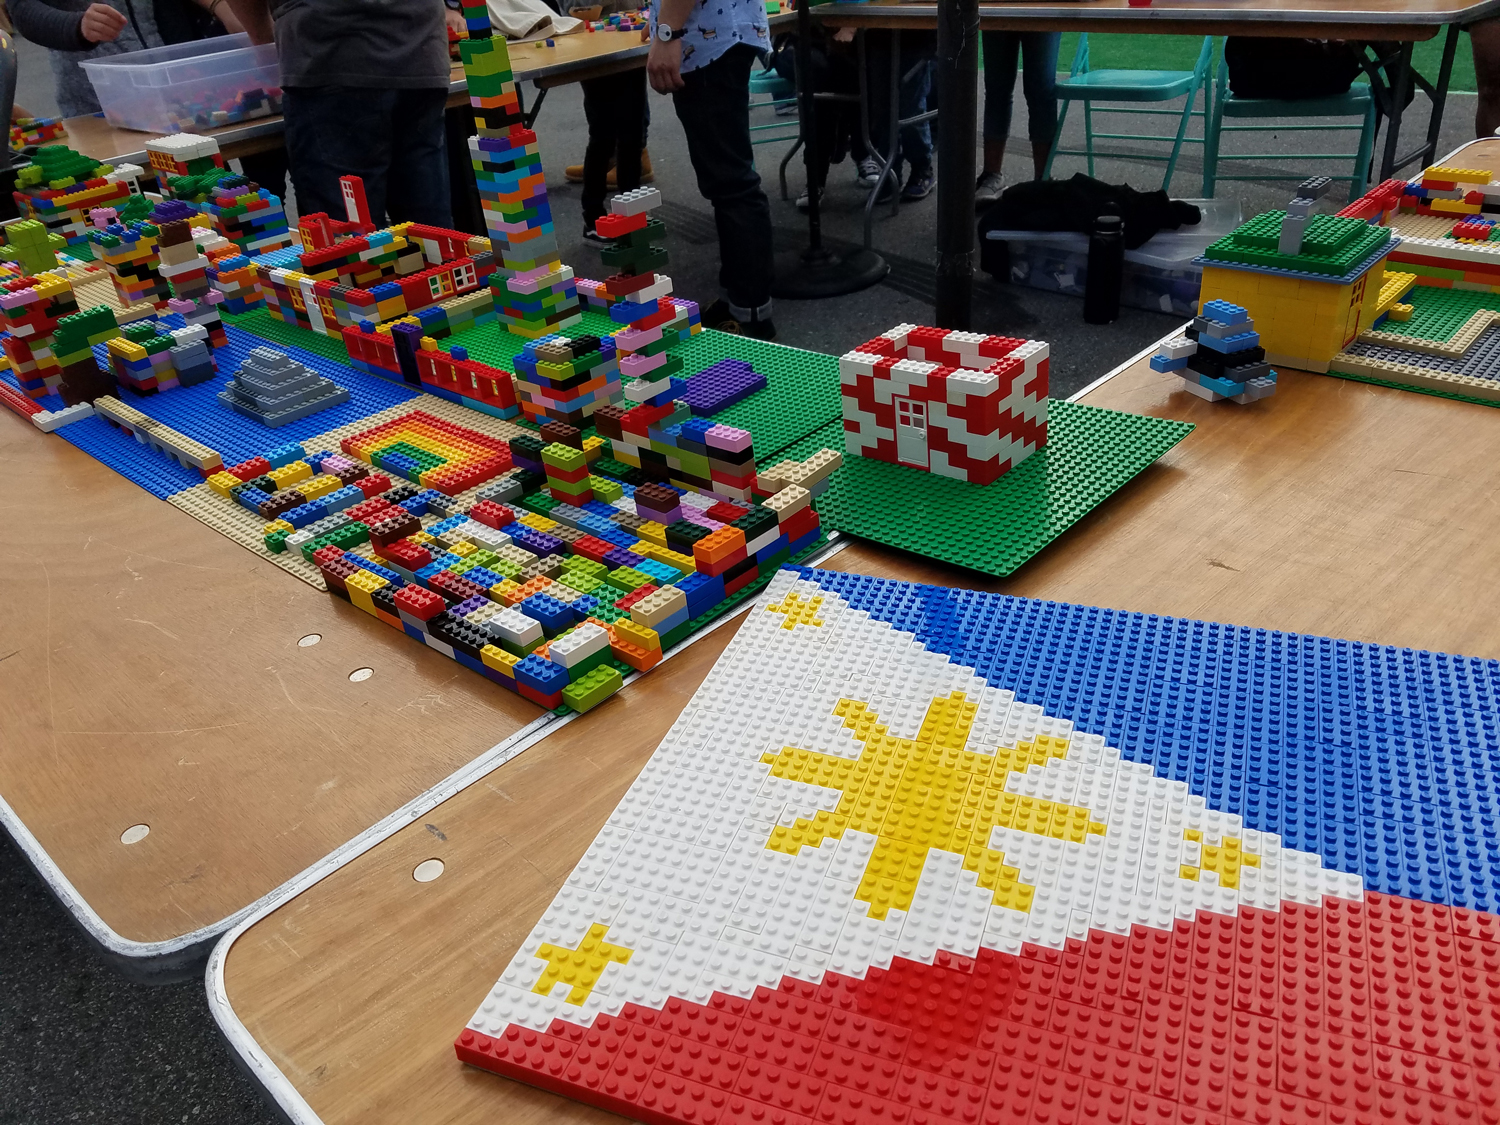 Lego at UndiscoveredSF 2018